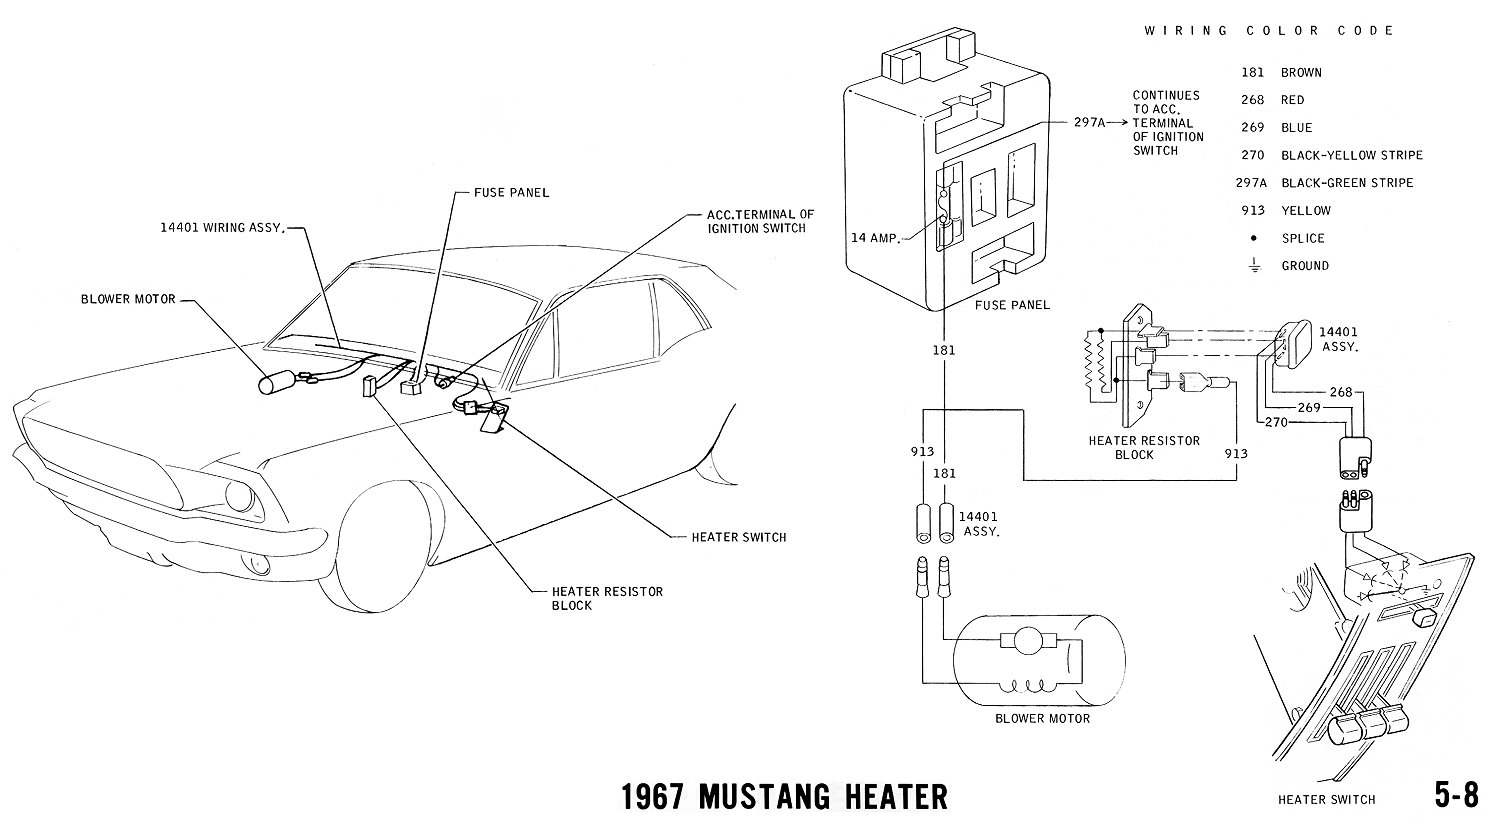 67heater 1967 mustang wiring and vacuum diagrams average joe restoration 1966 mustang fuse box diagram at bayanpartner.co